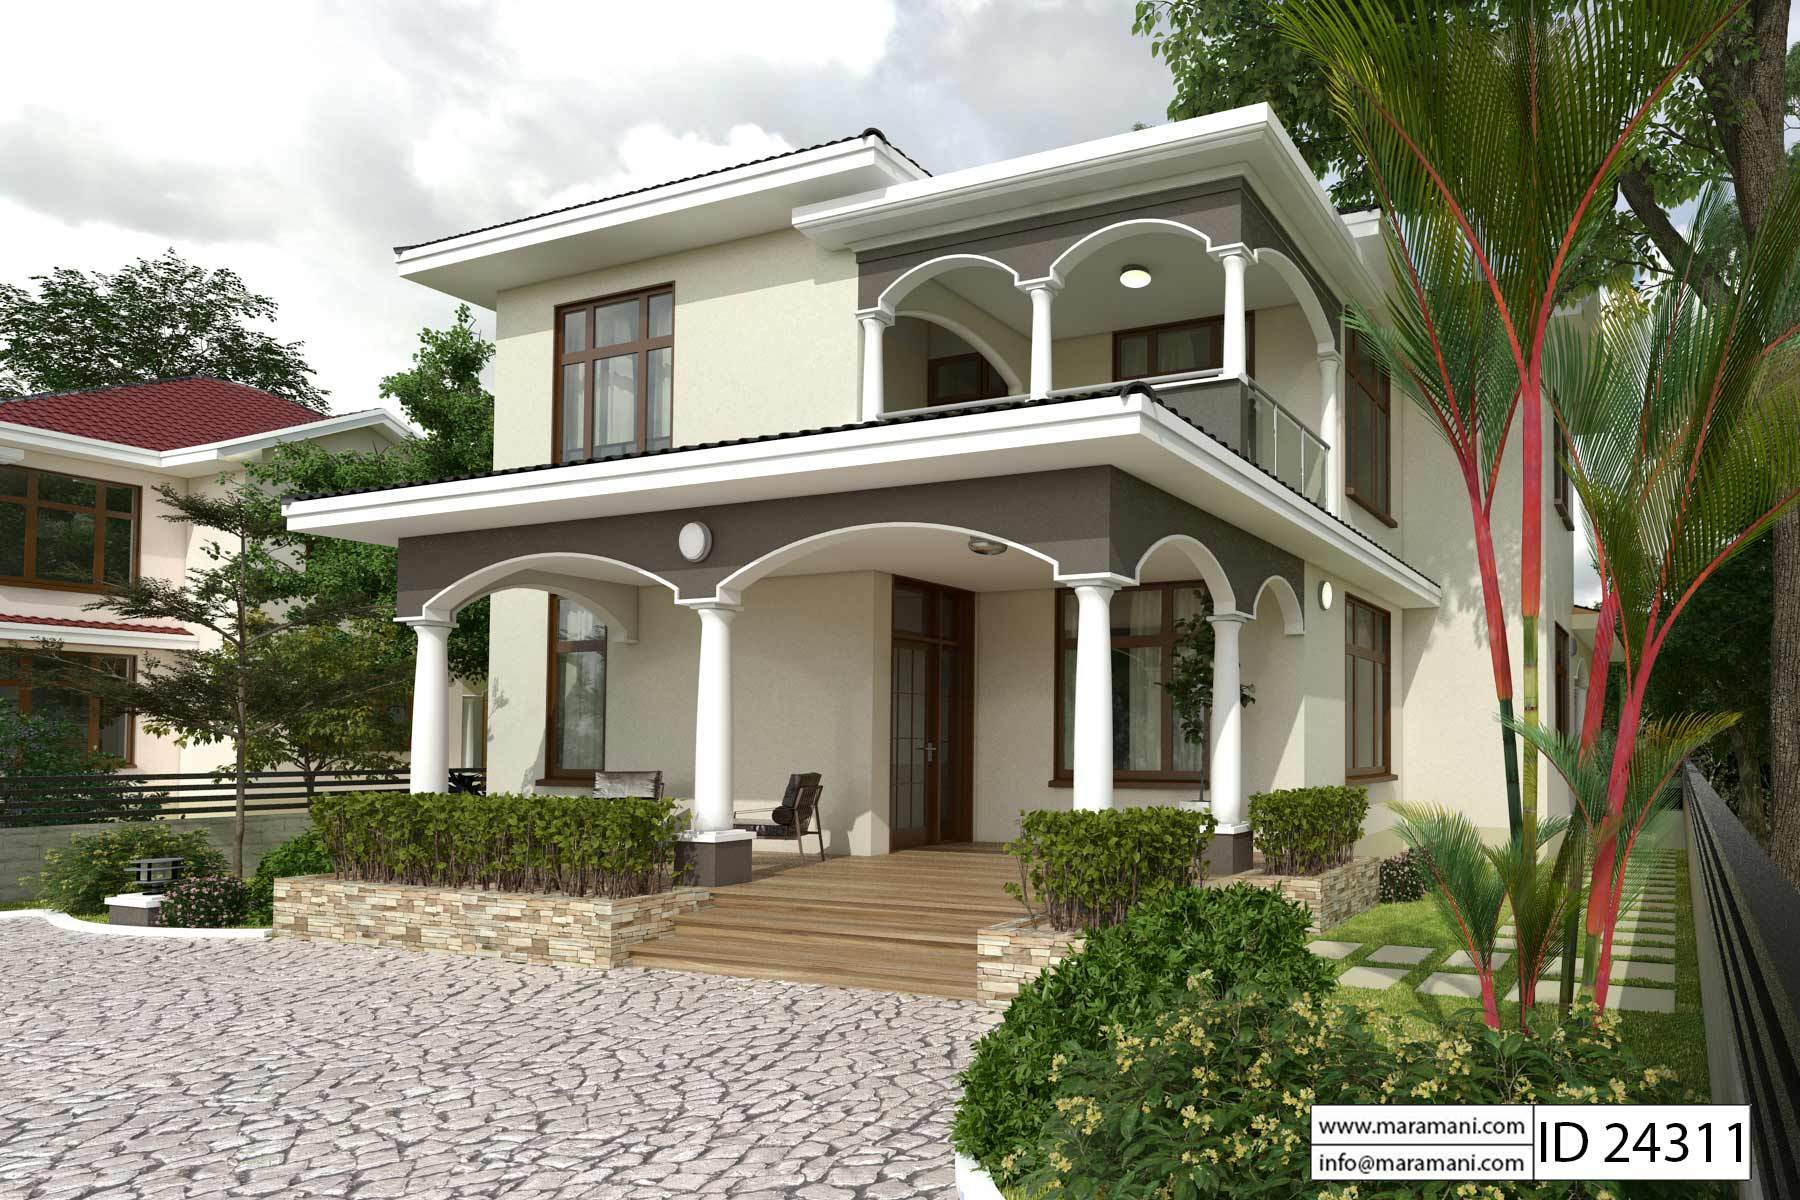 4 room house four bedroom house plan id 24311 house plans by maramani 3622